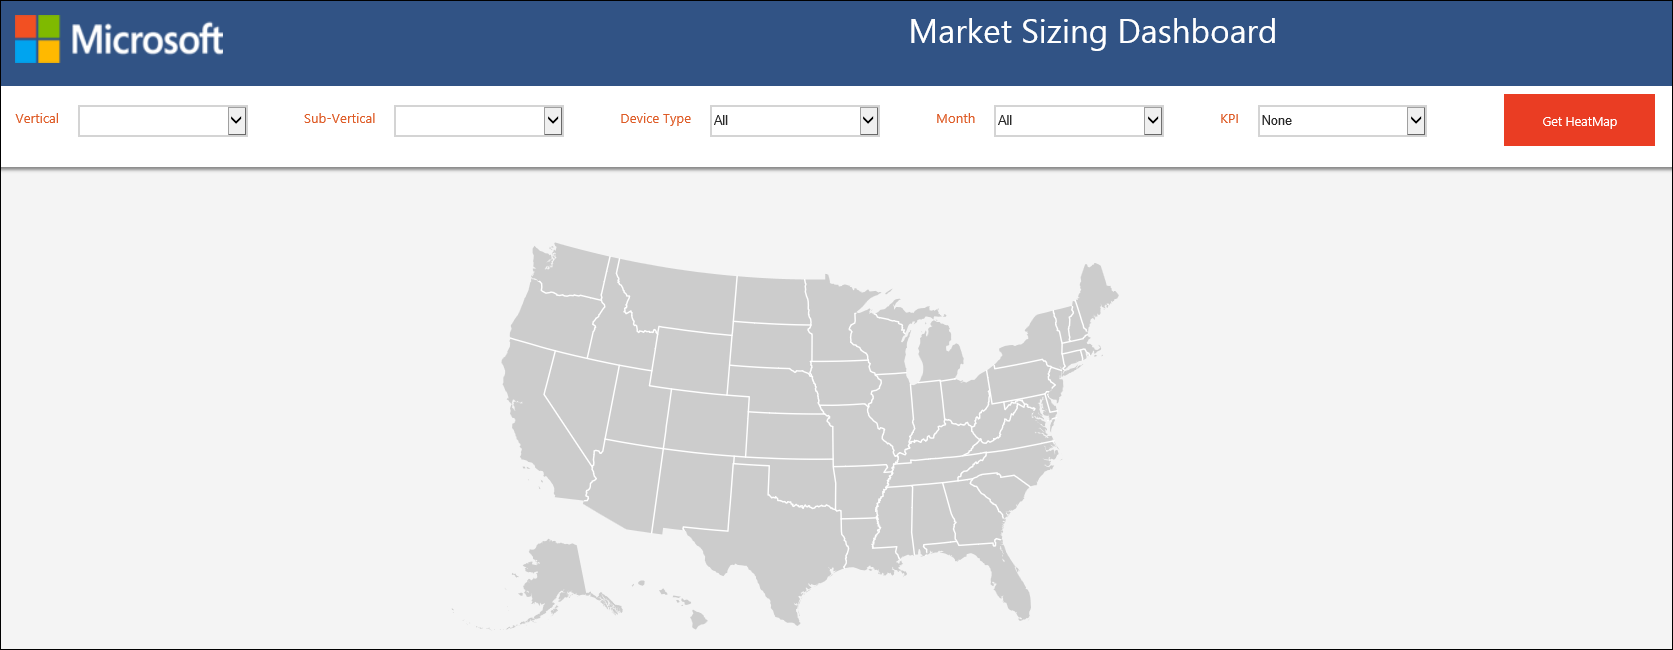 bing ads market sizing